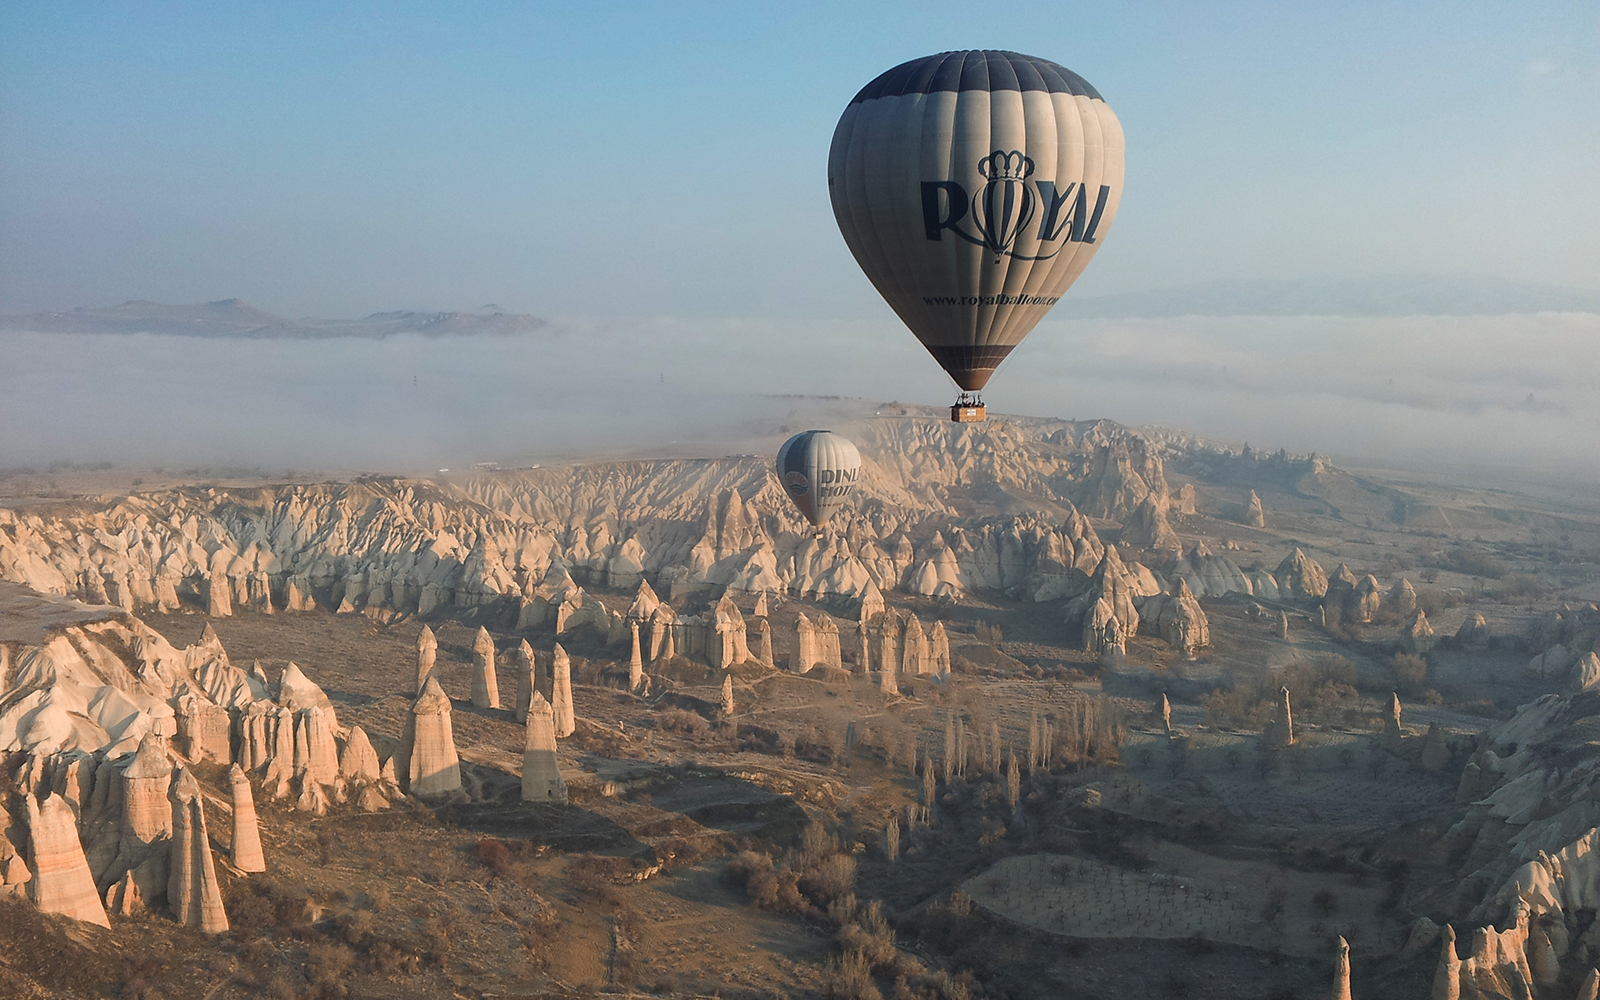 Best Hot-Air Balloon Rides: Royal Balloon, Cappadocia